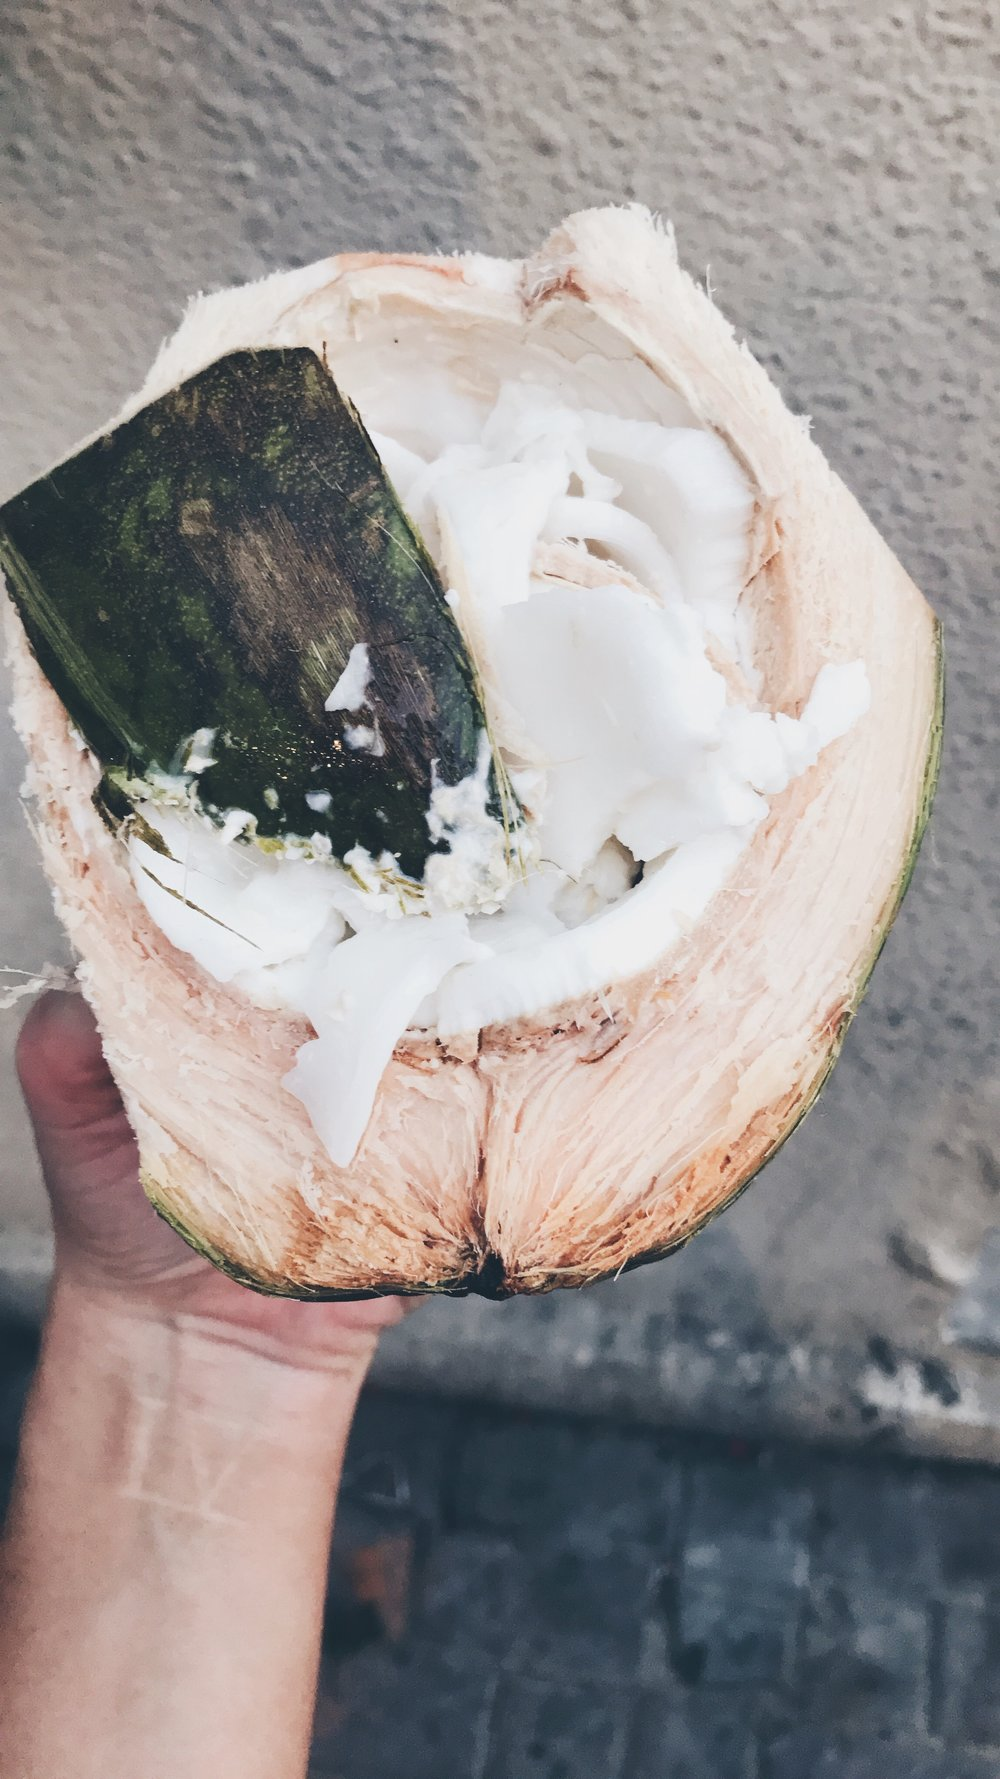 DID YOU KNOW THAT coconut meat HELPS BUILD LEAN MUSCLES + REUCES BELLY FAT -